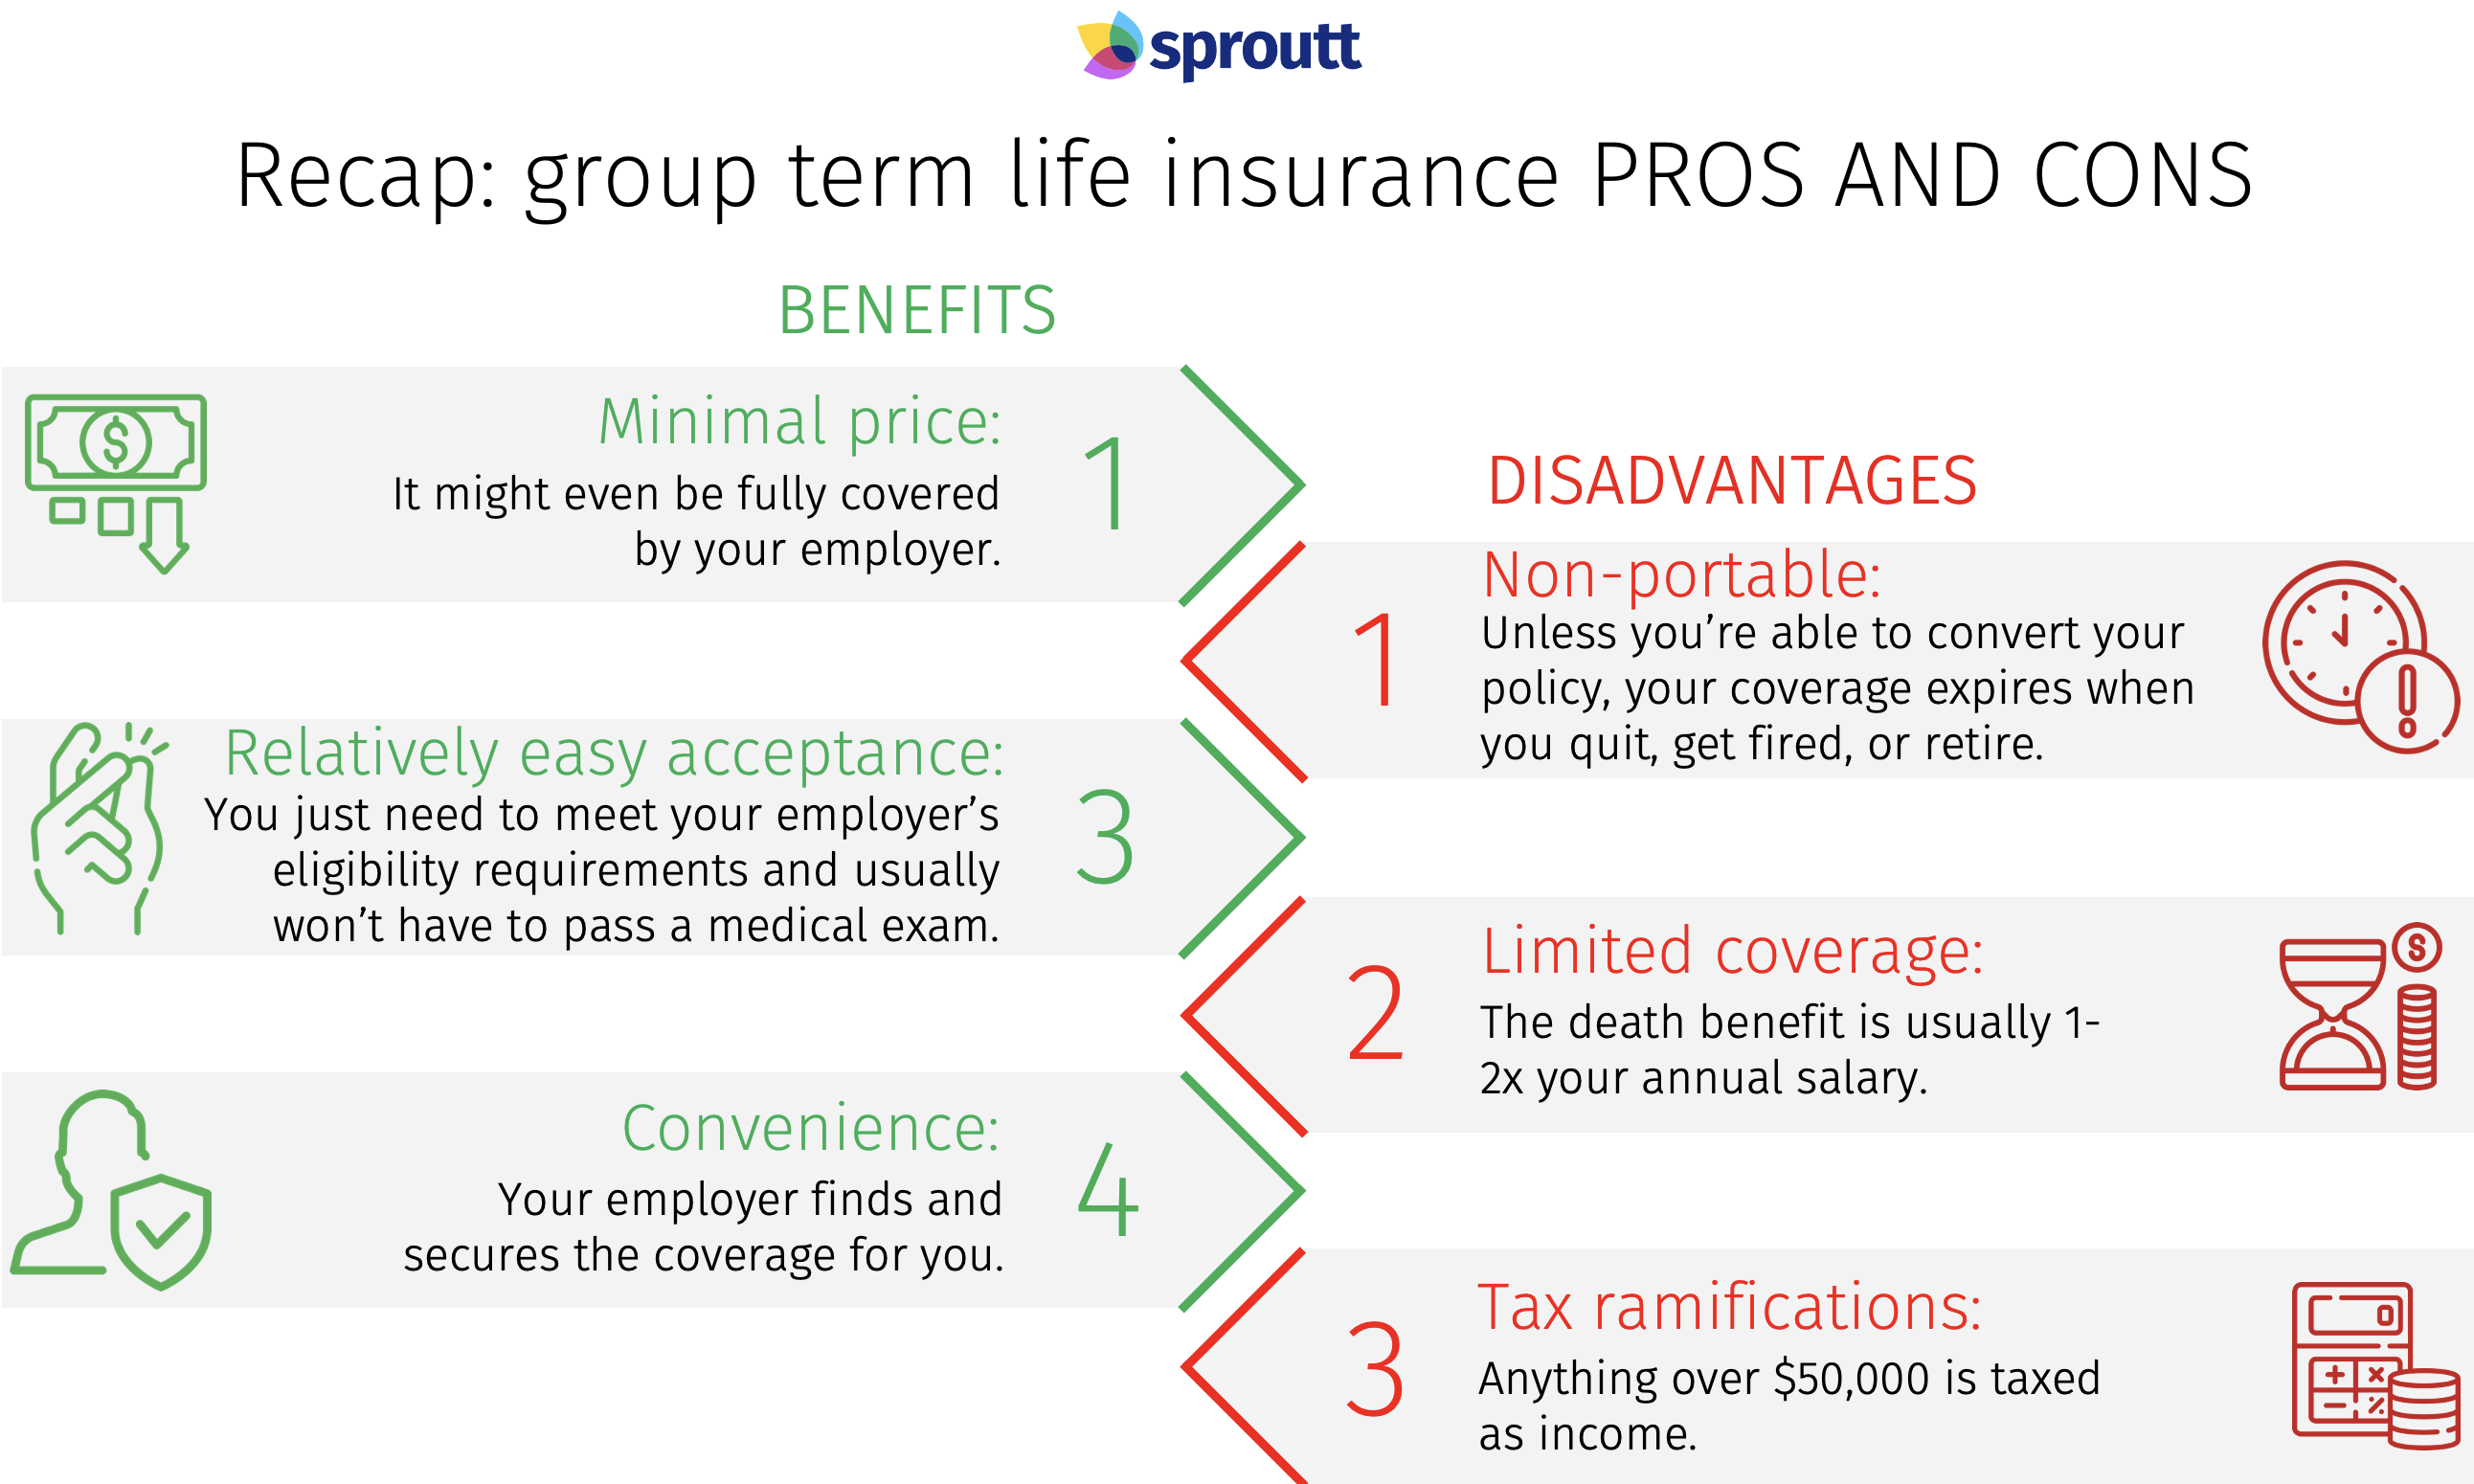 Group term life insurance pros and cons